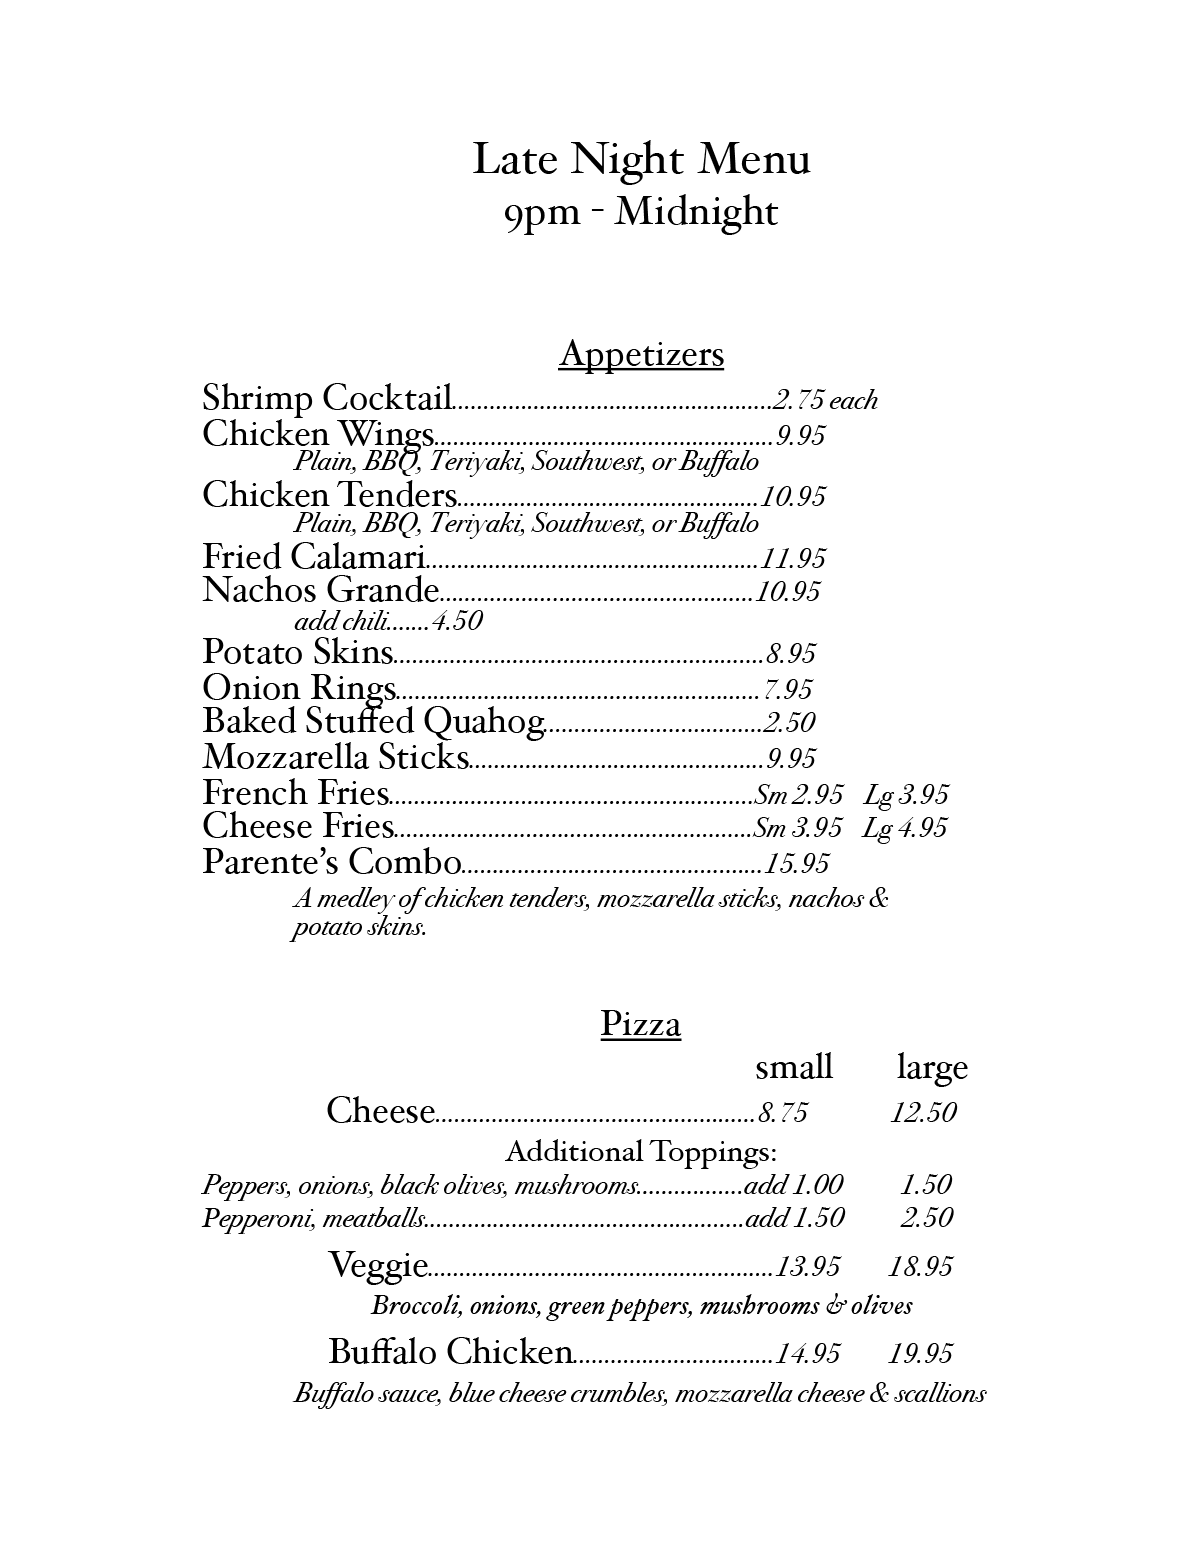 Parente's Late Night Menu 08-21-20